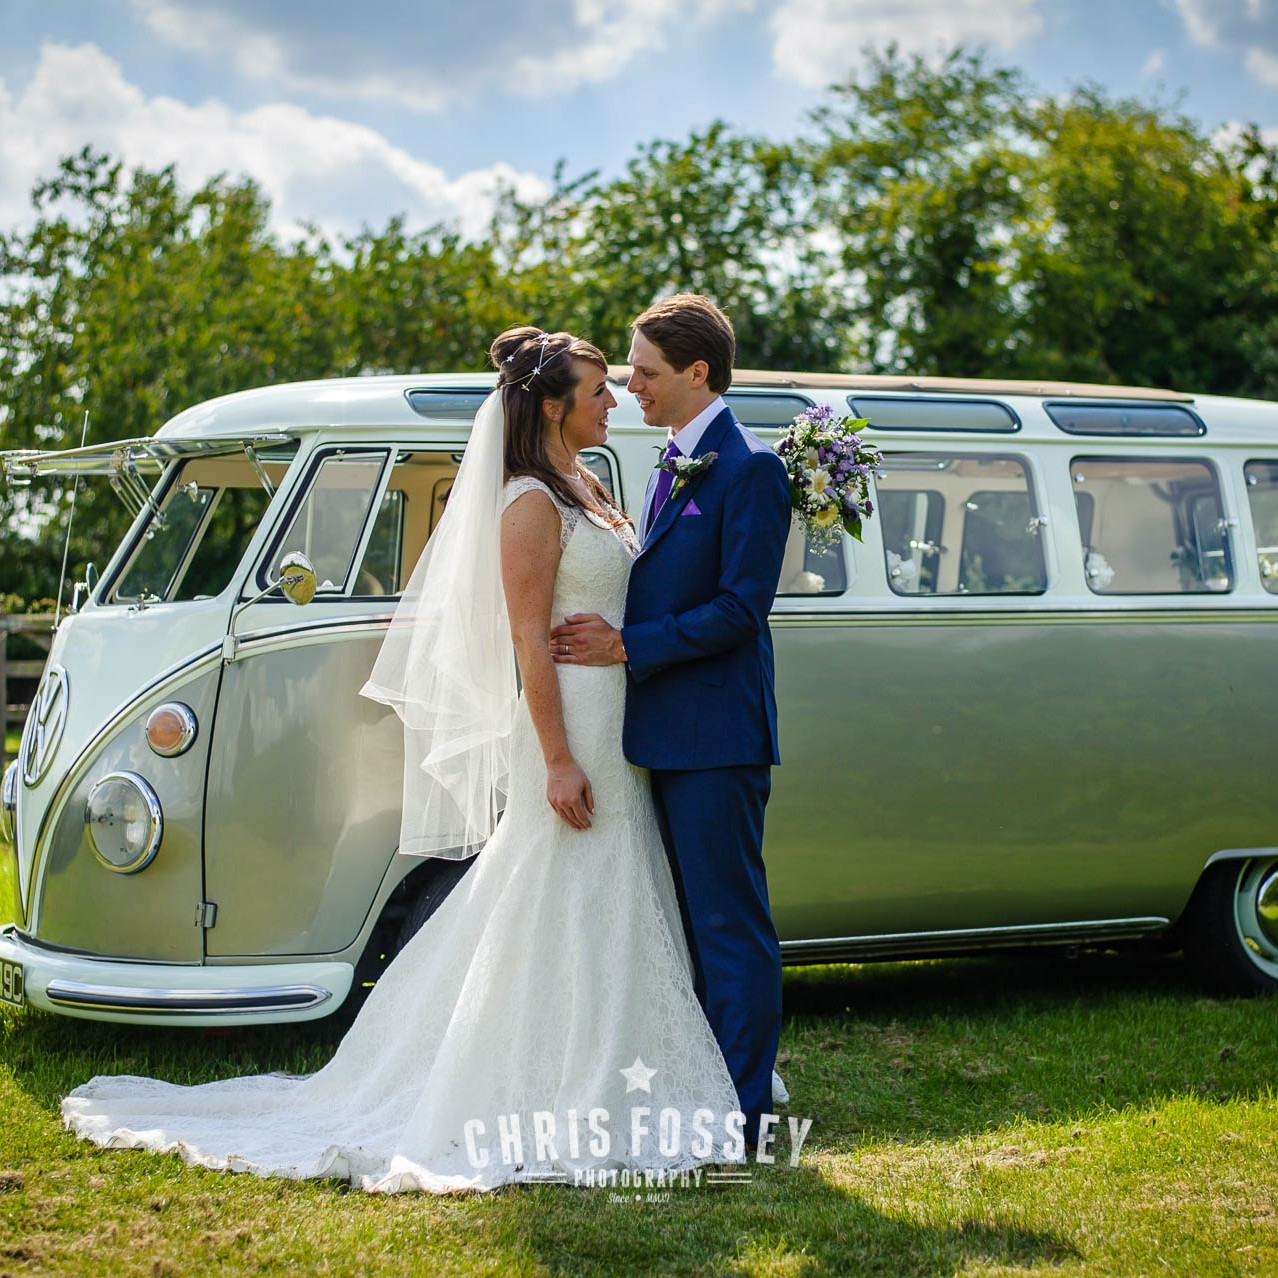 Warwickshire Wedding Photography Portfolio-Solihull Wedding Photography with VW Camper Van by Chris Fossey Photography-28